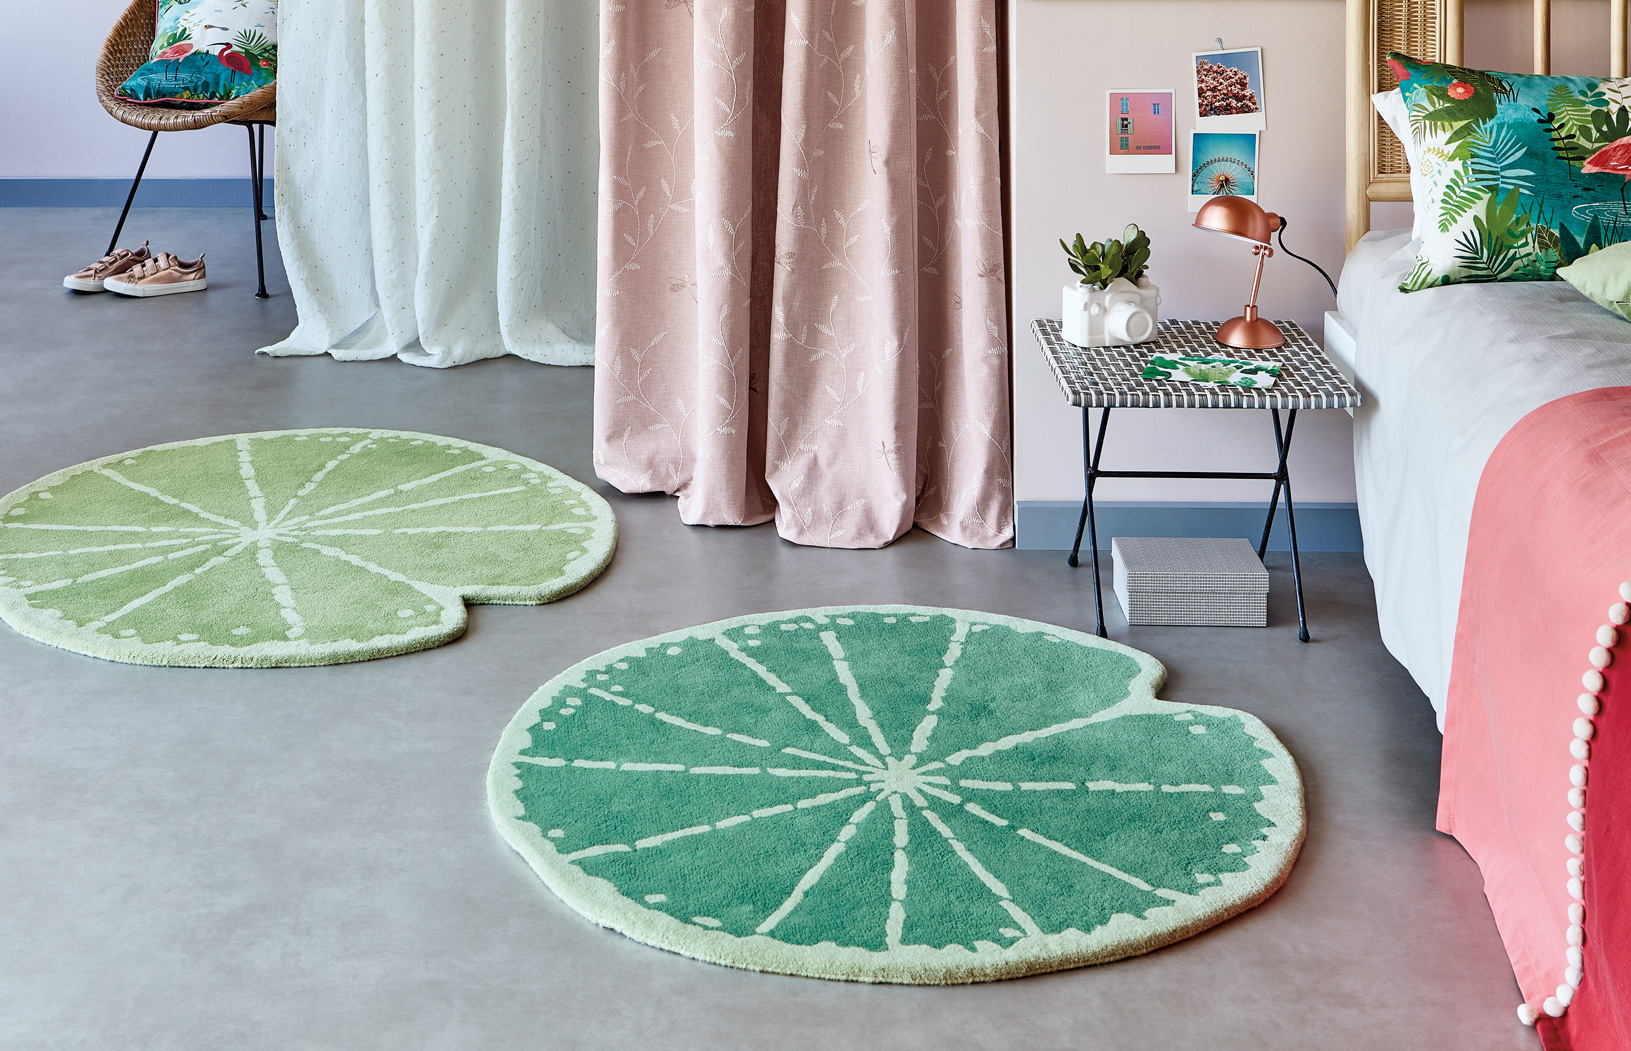 Villa Nova Lily Pad kids rugs in two shades of green